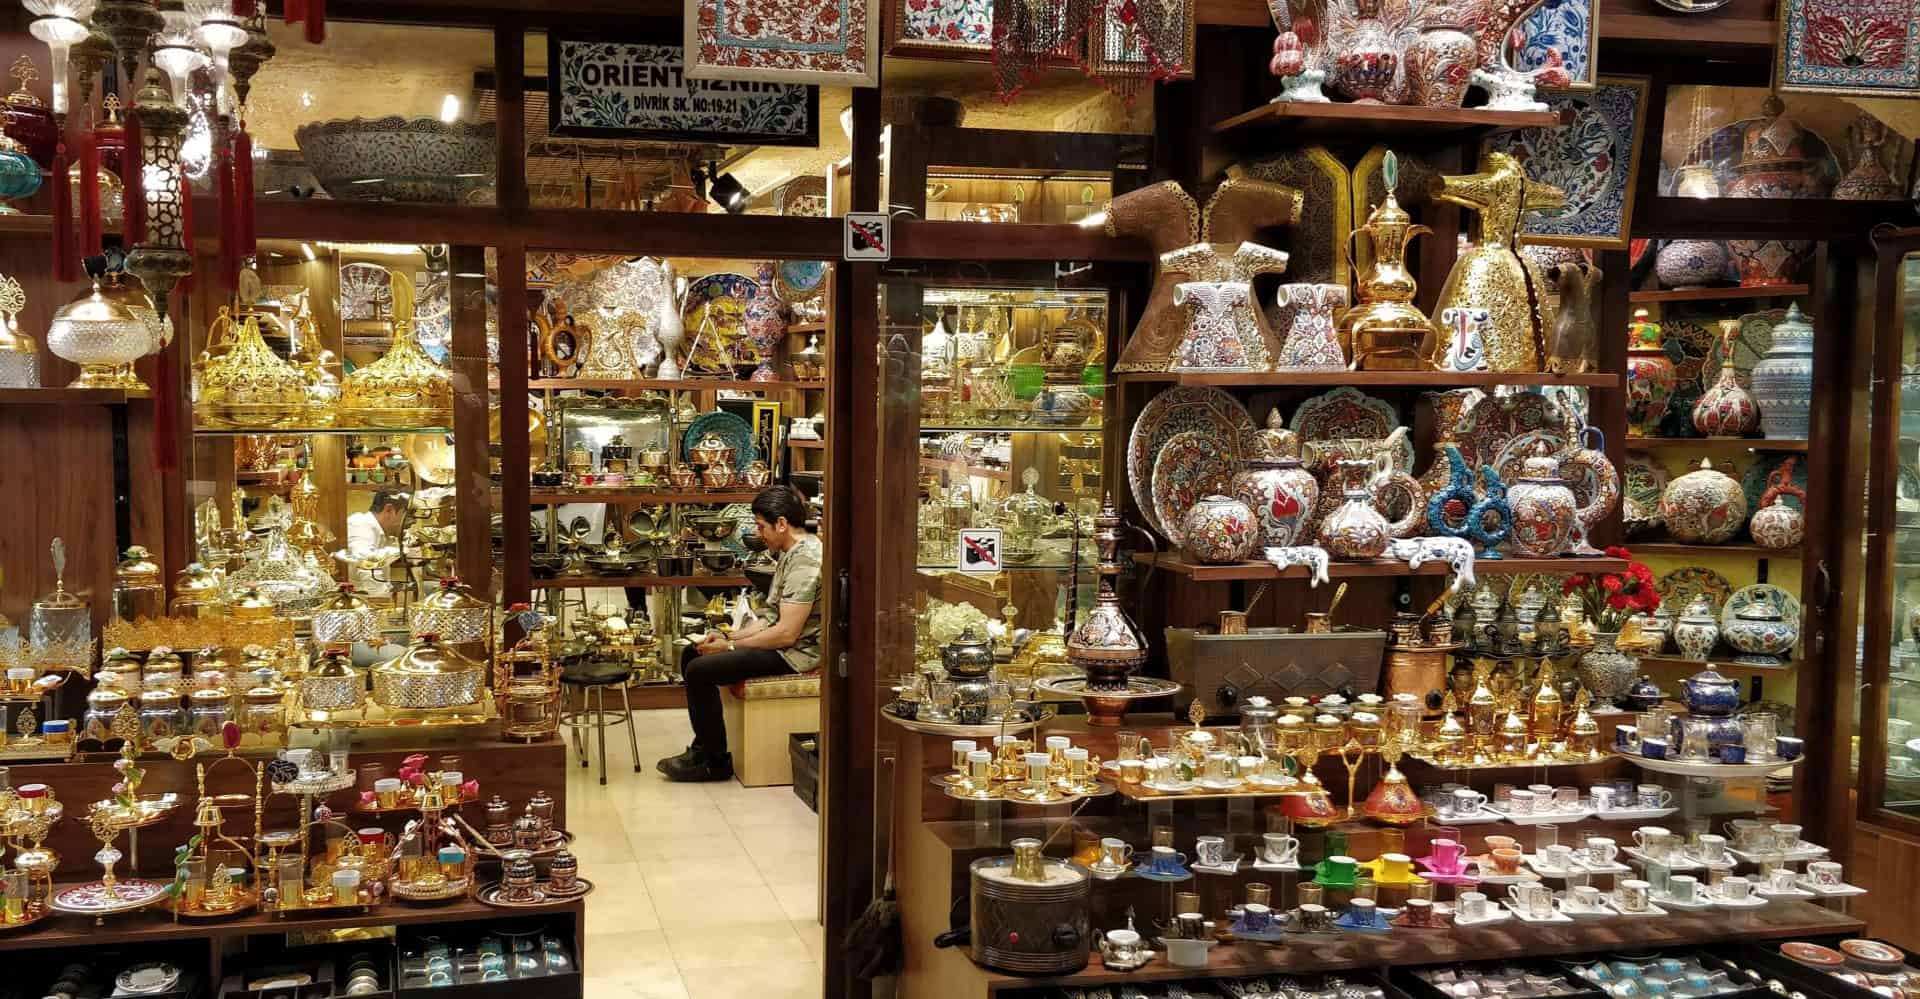 Shop selling authentic Turkish items